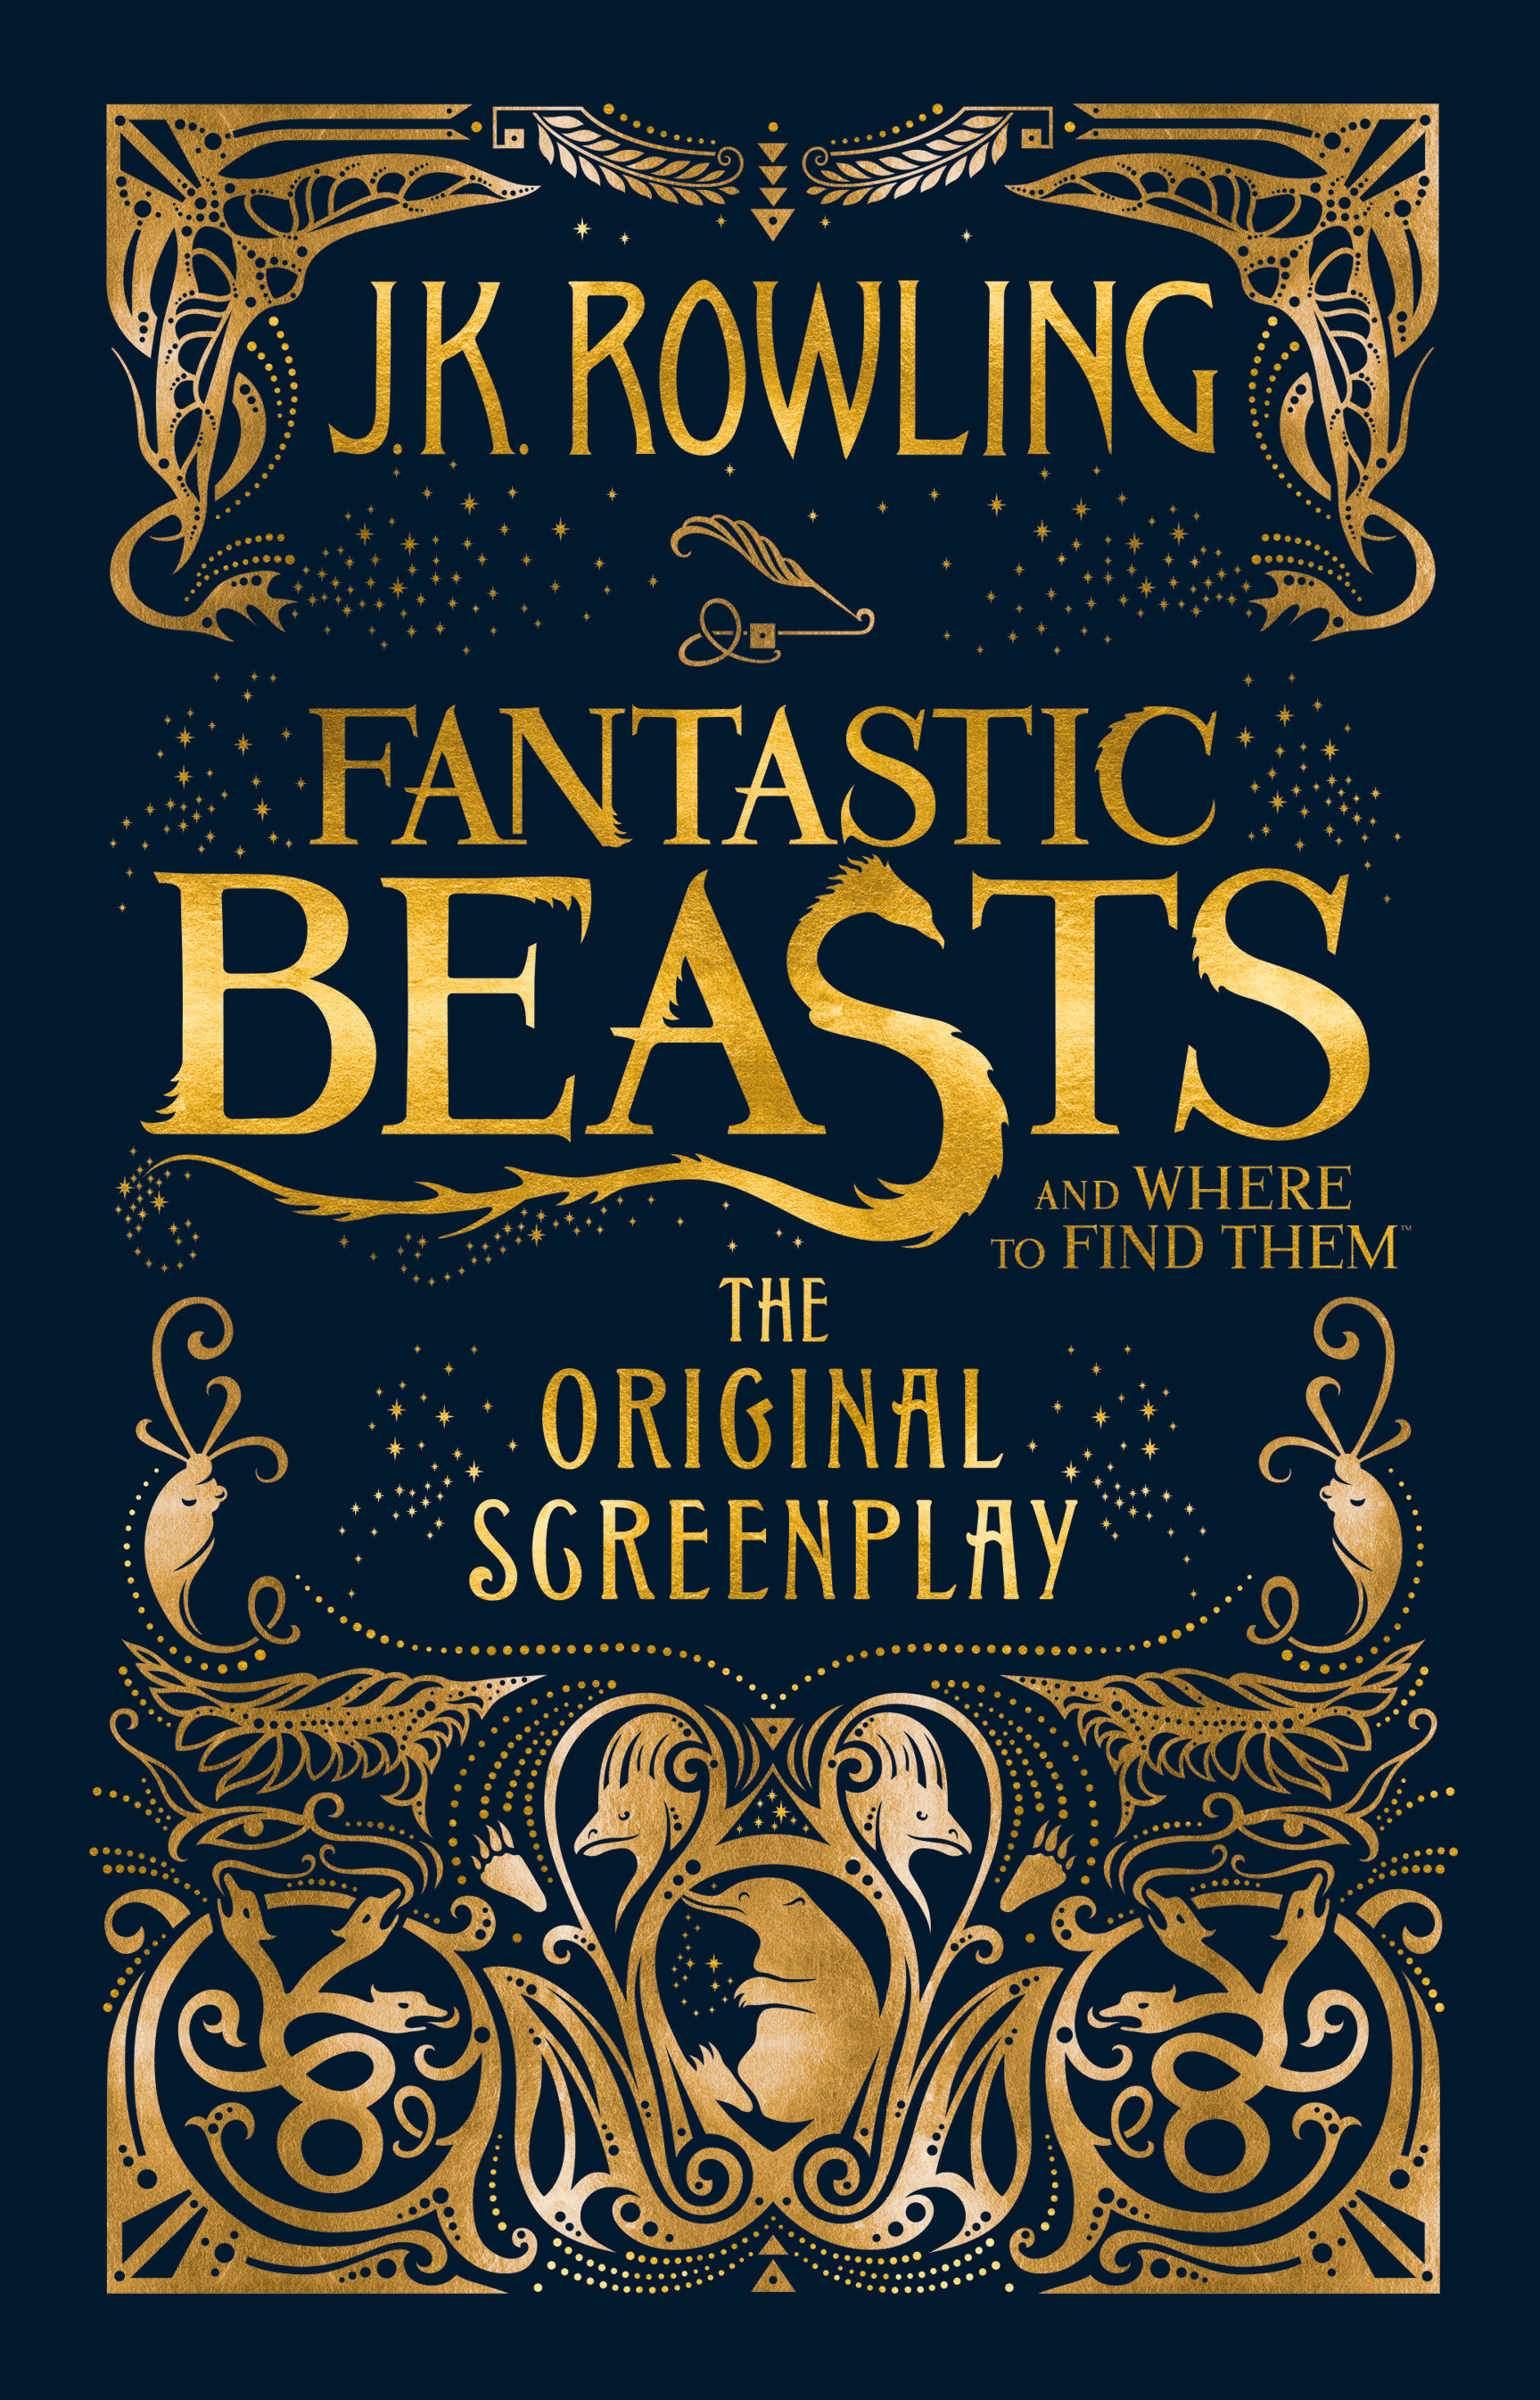 Fantastic beasts and where to find them (novel)